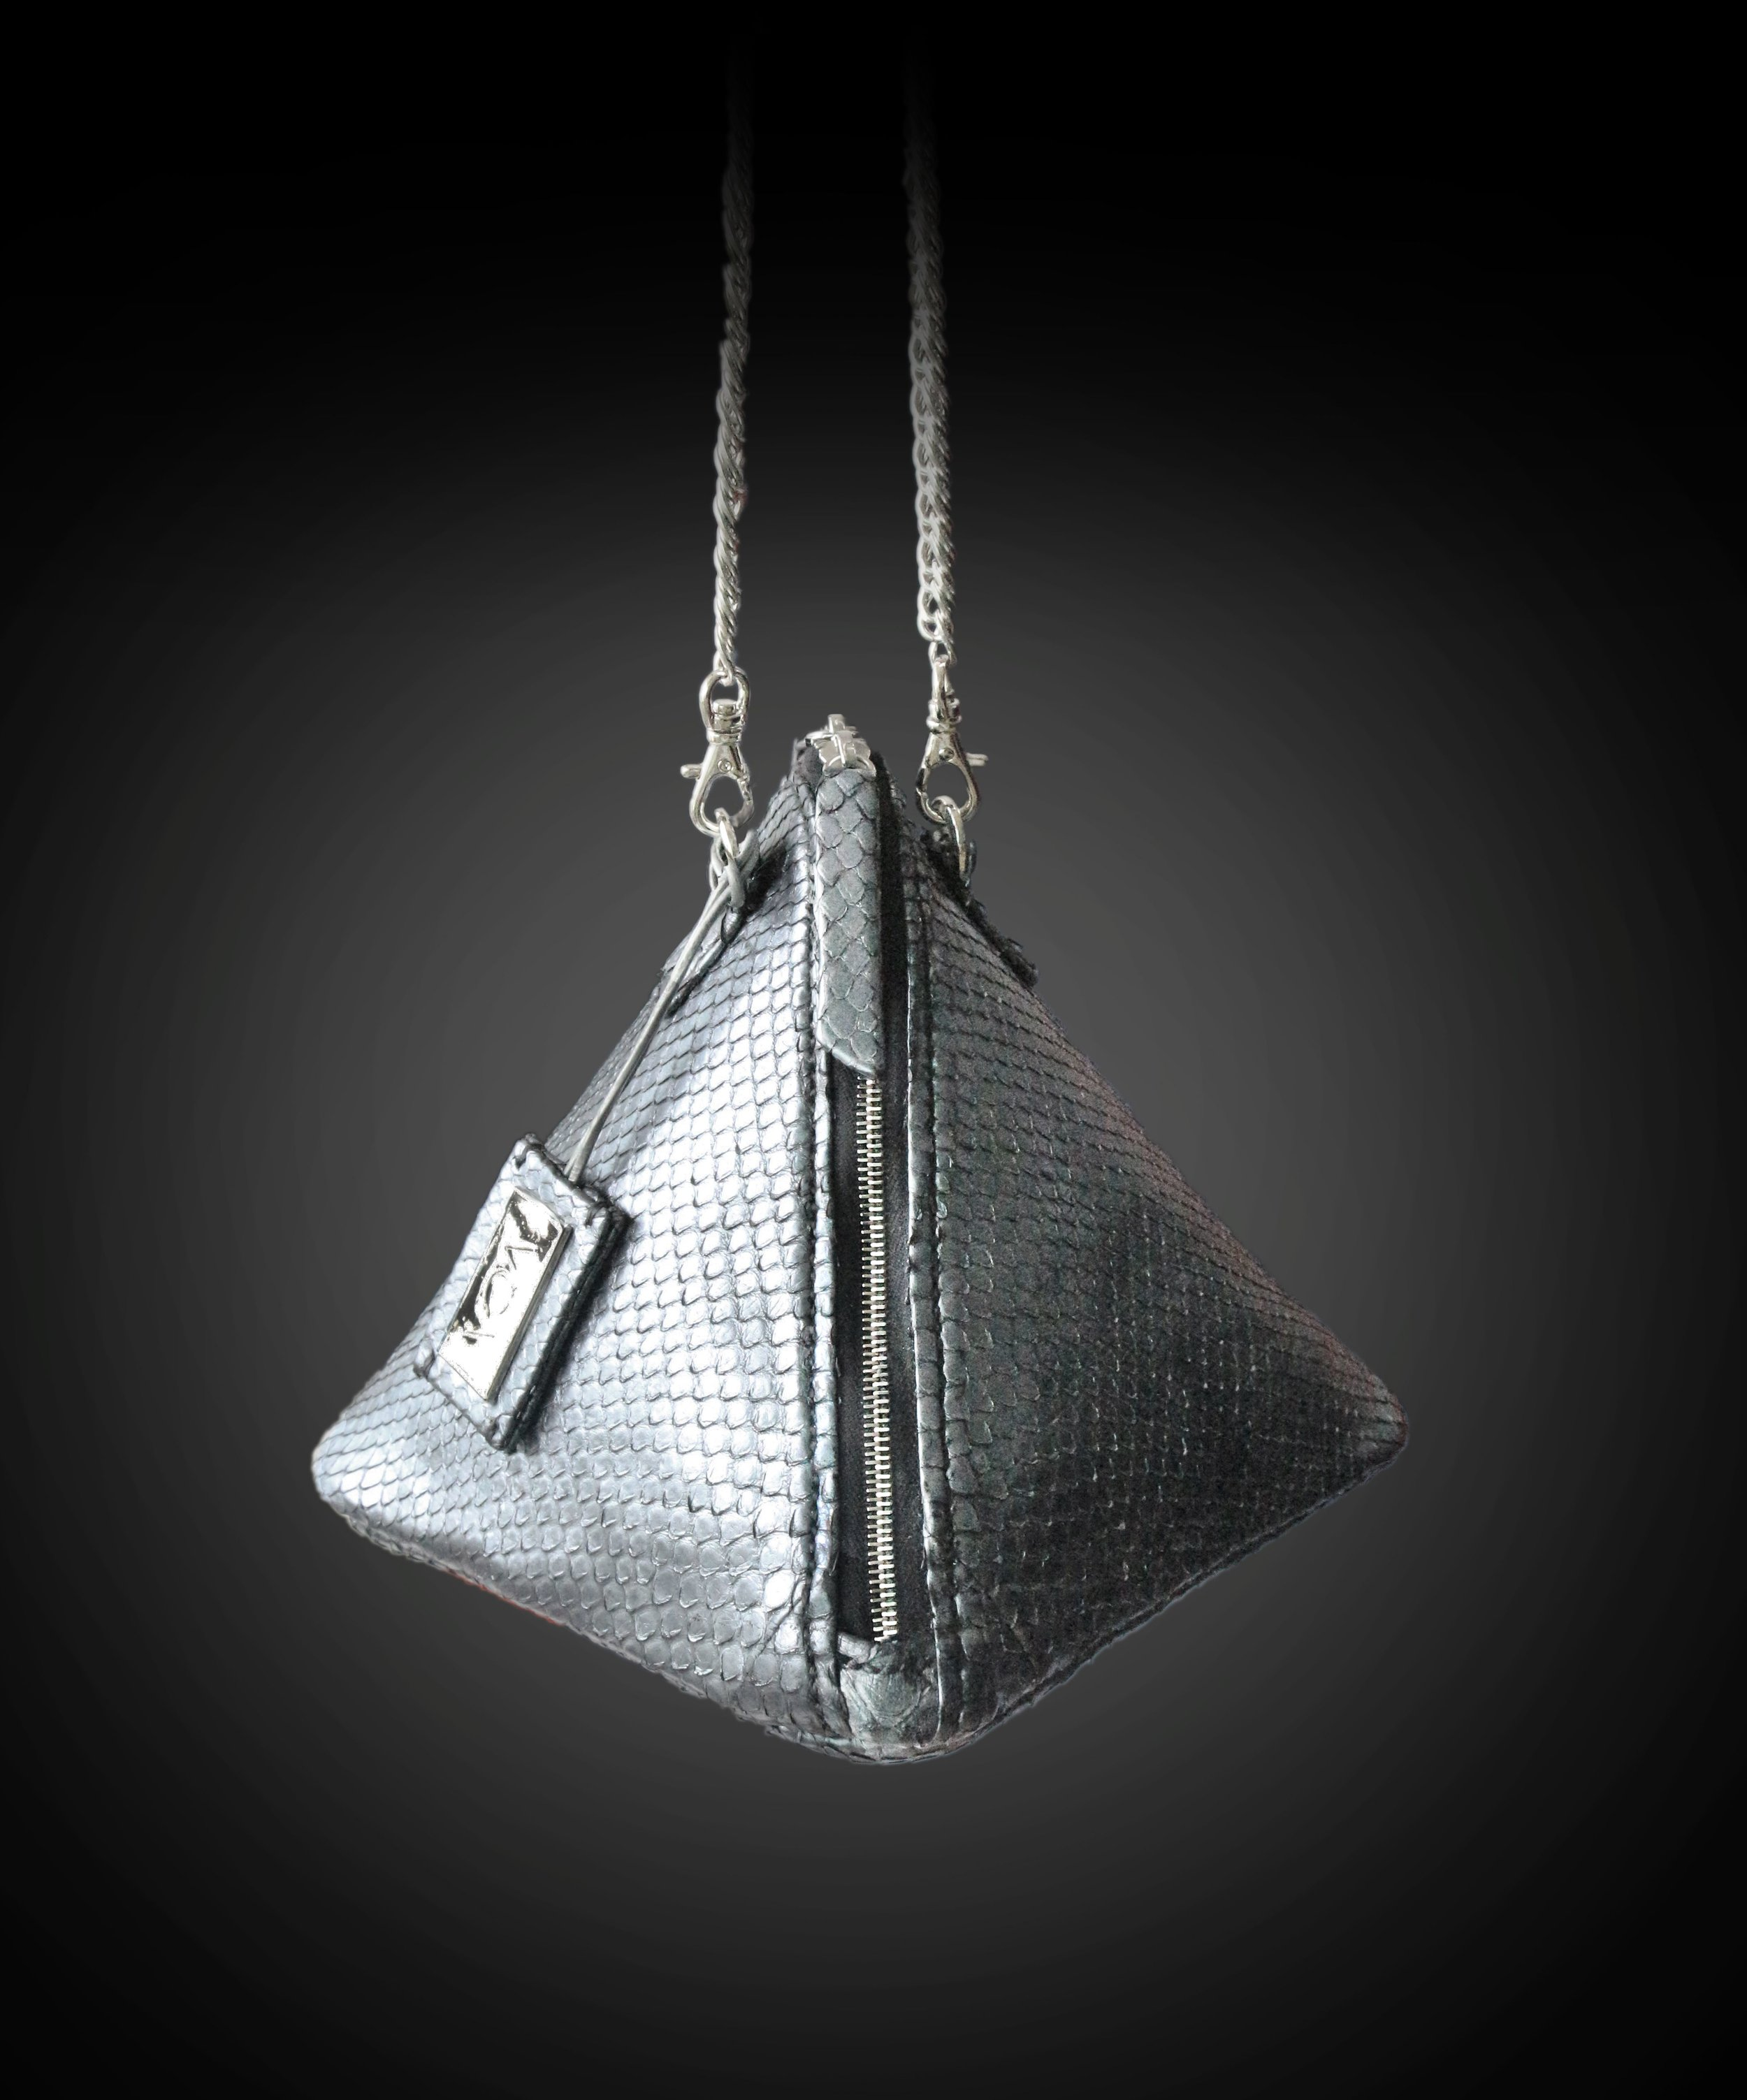 Pyramid Bag - View The Details